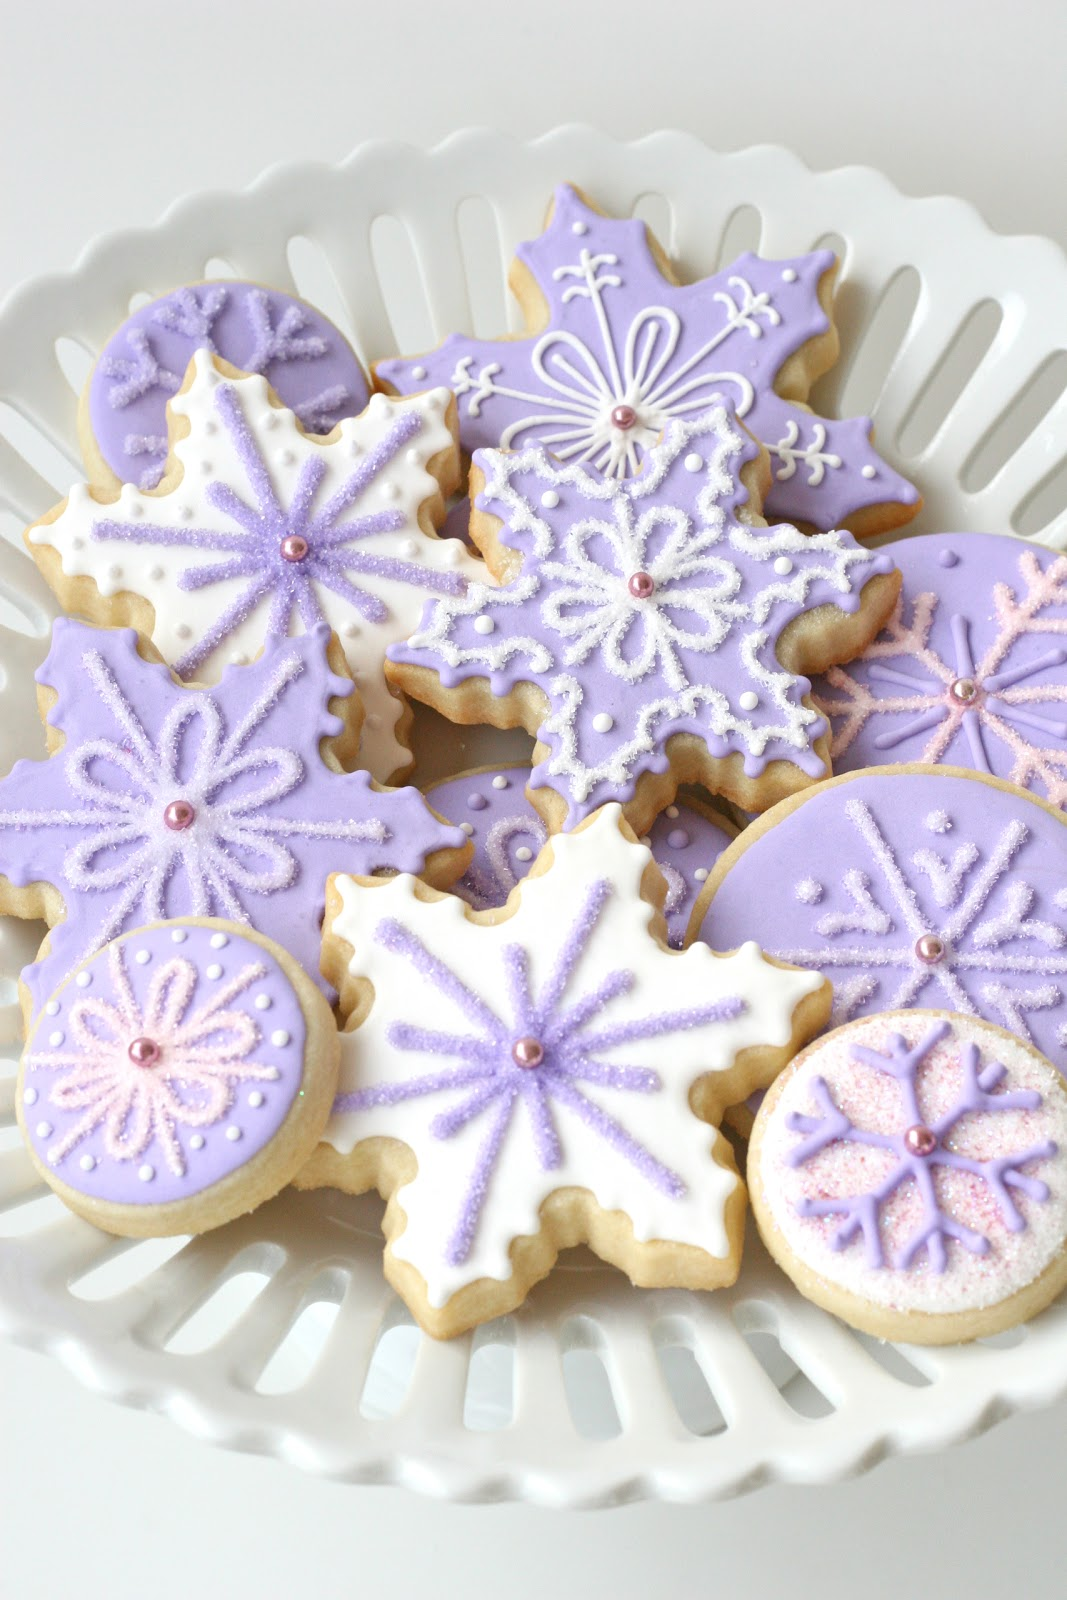 My royal icing recipe and tons